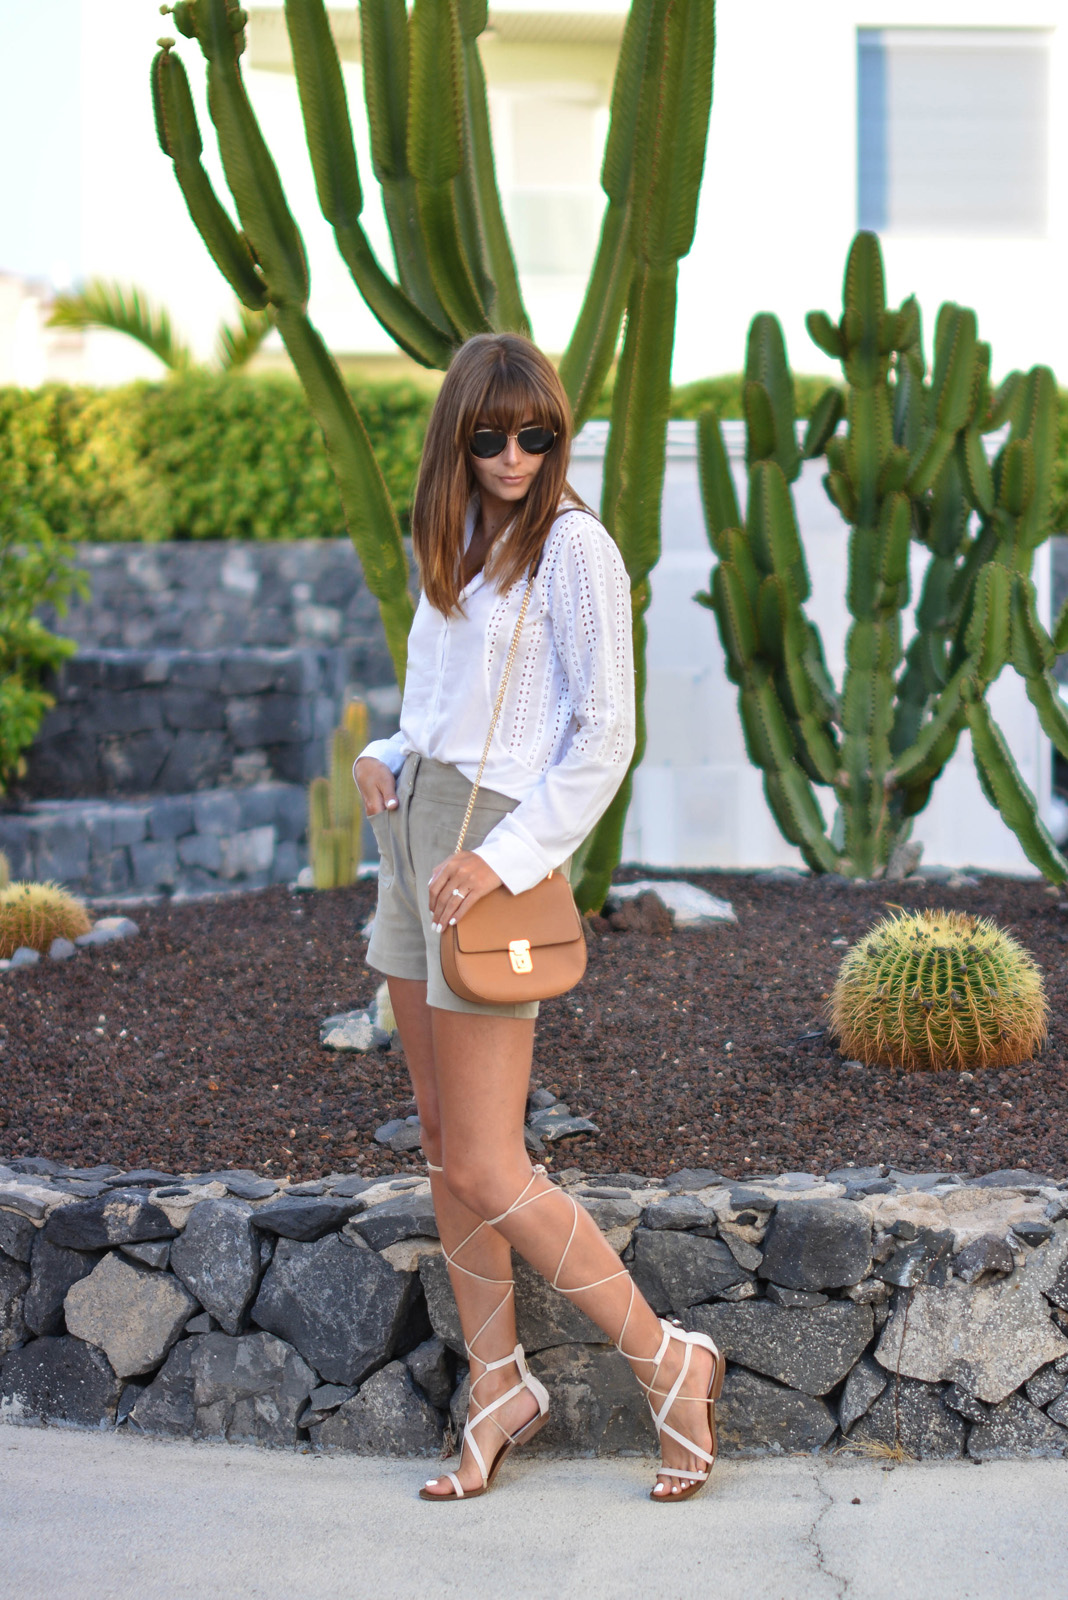 EJSTYLE - Emma Hill wears white broderie anglaid shirt, M&S faux suede front pocket shorts, Mango tie up gladiator sandals, Forever 21 Chloe Drew dupe bag, OOTD